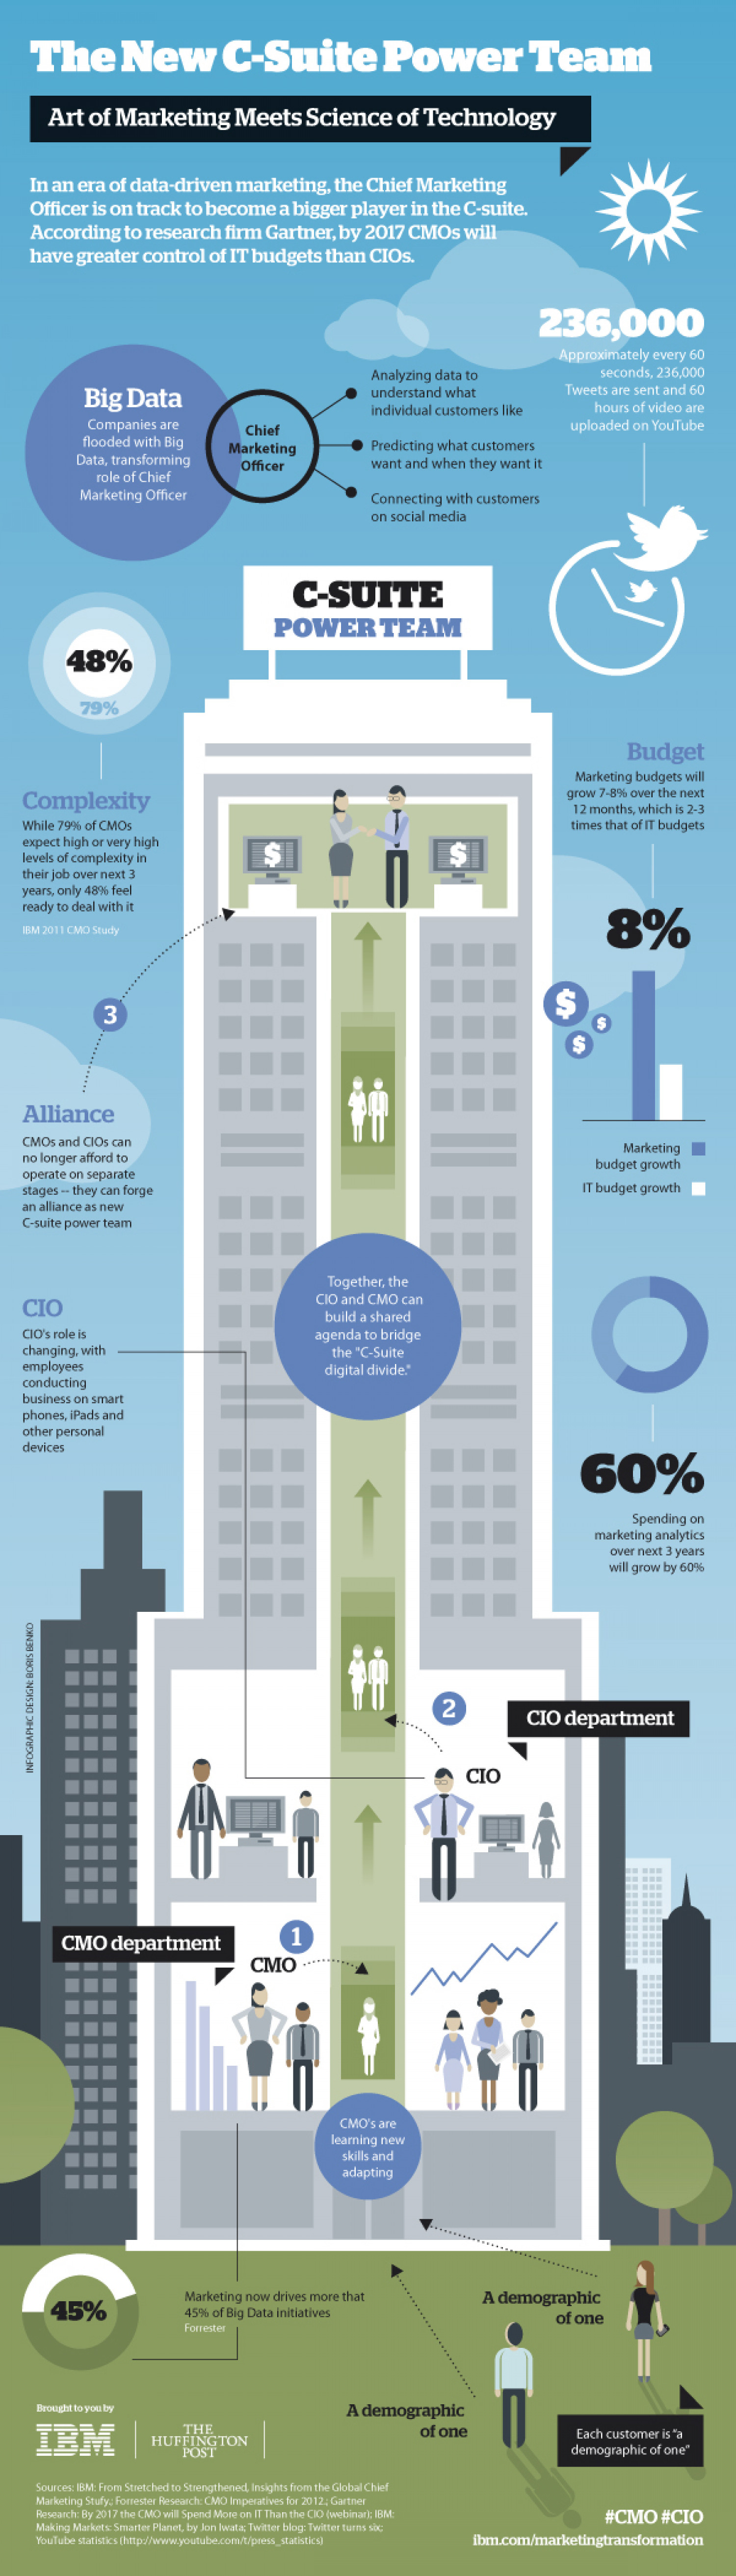 The New C-Suite Power Team Infographic